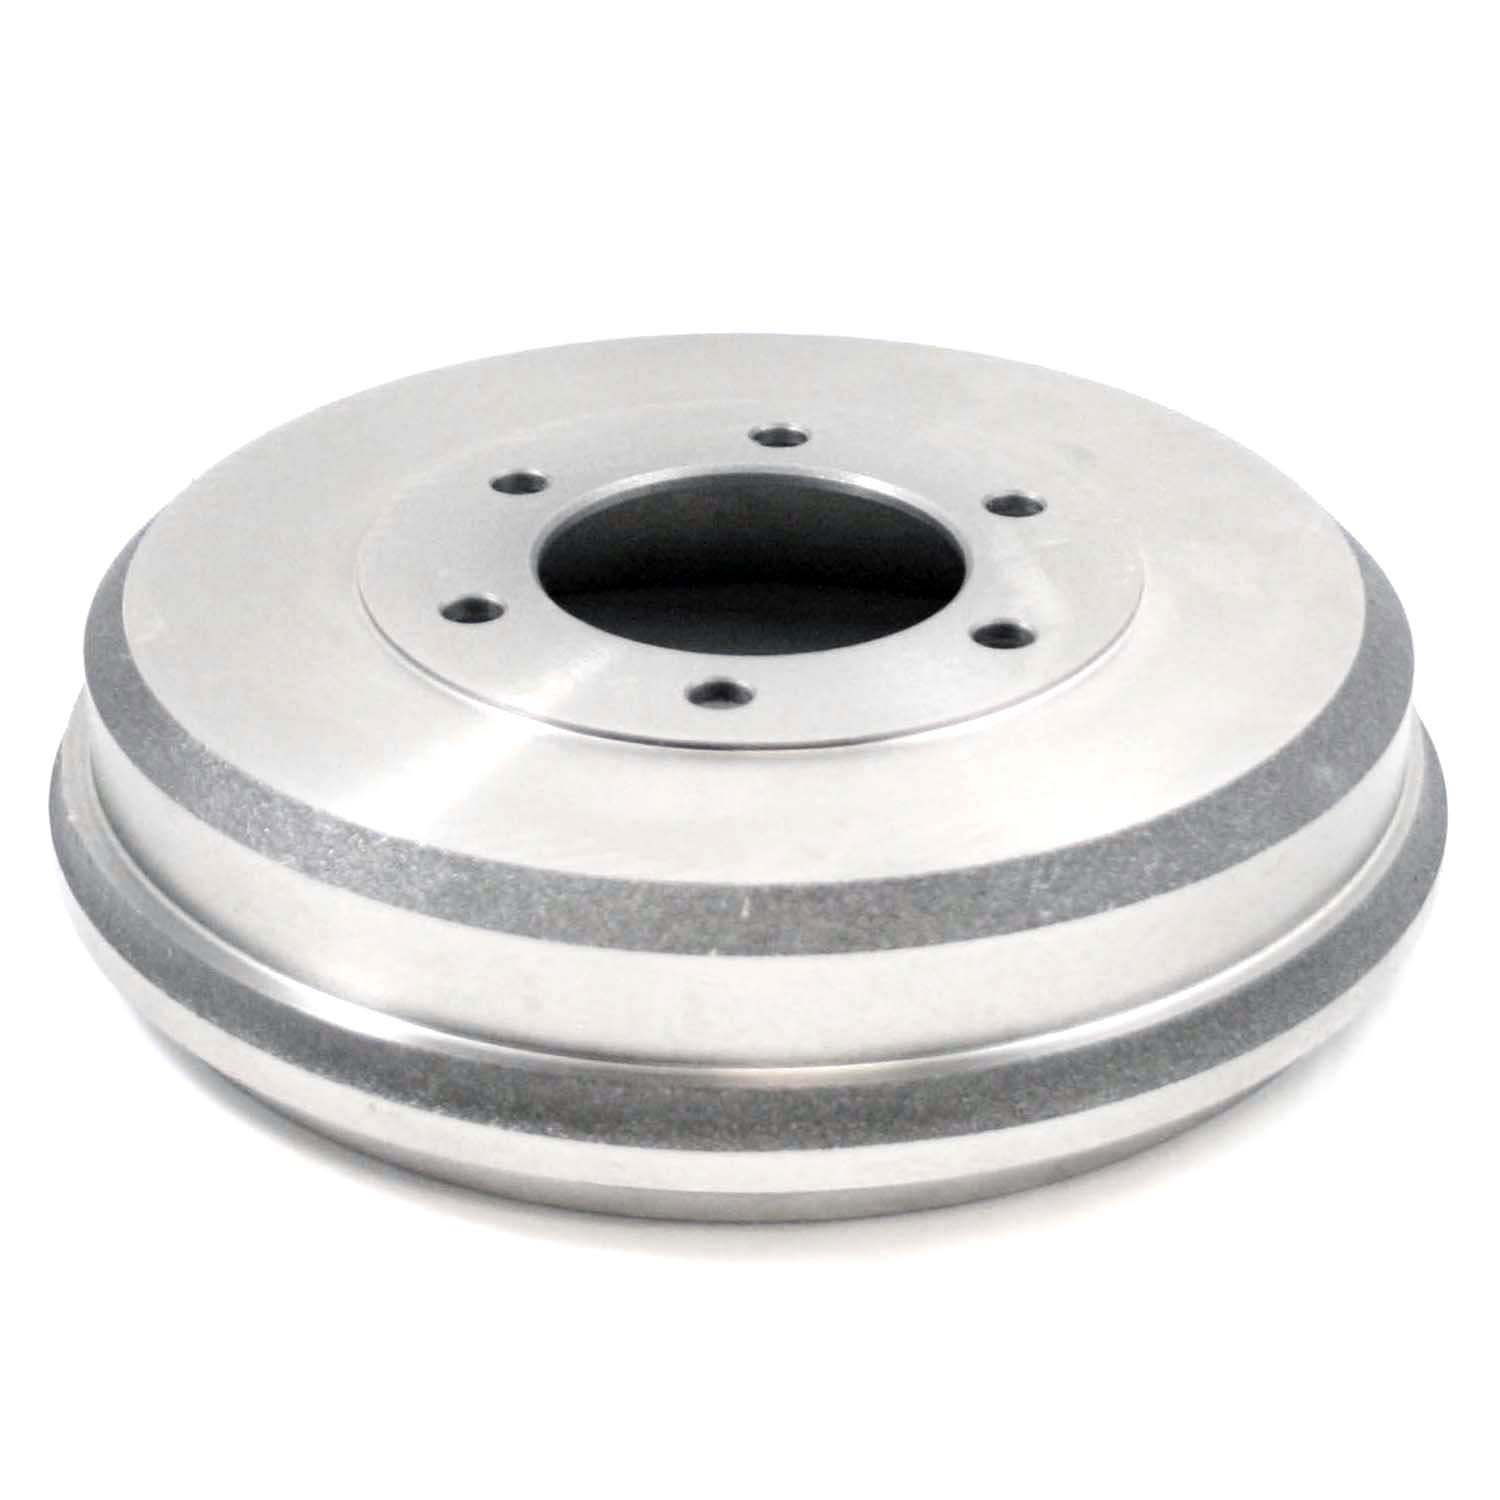 DuraGo BD80120 Rear Floating Brake Drum